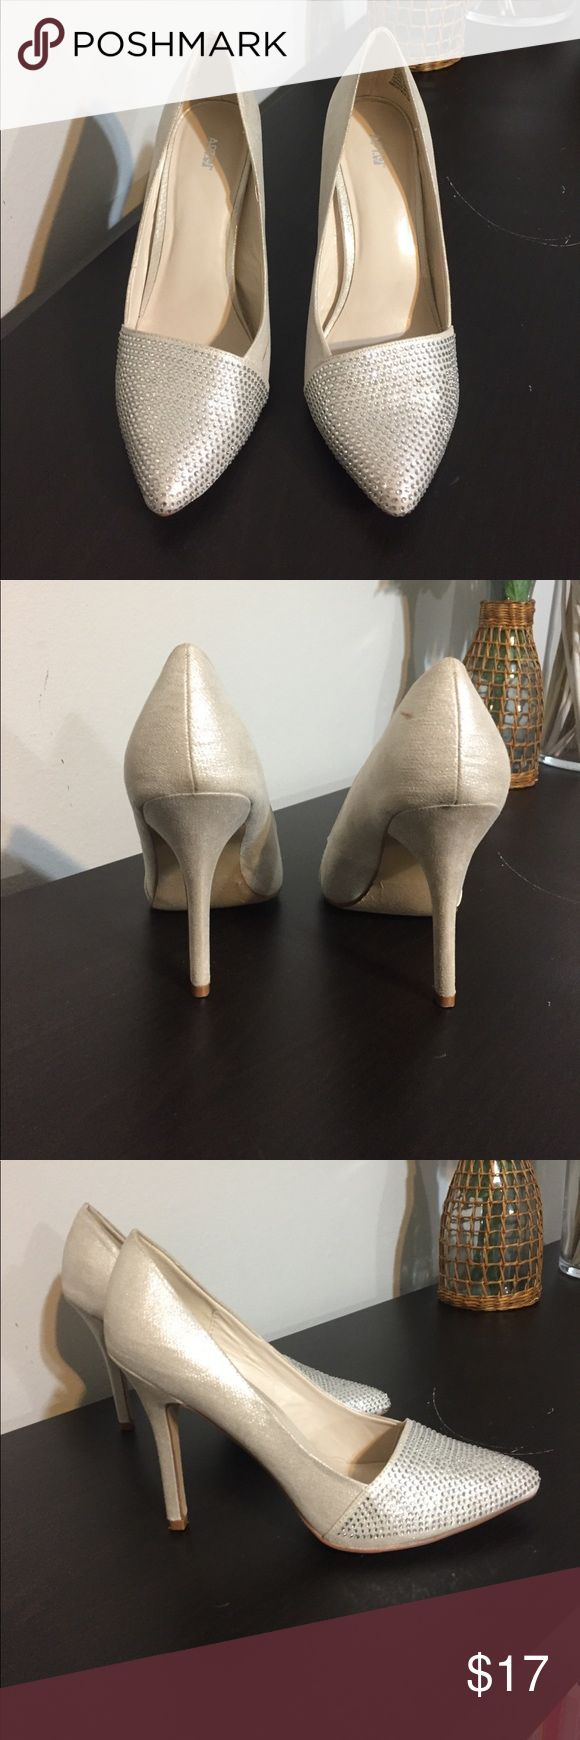 "Gorgeous sparkly toed heels Champagne colored heels with sparkly rhinestone toes. These were only worn once. There are two small scuff marks on the inside of the right shoe. From a pet and smoke free home. Heel height is 4"". Apt. 9 Shoes Heels"